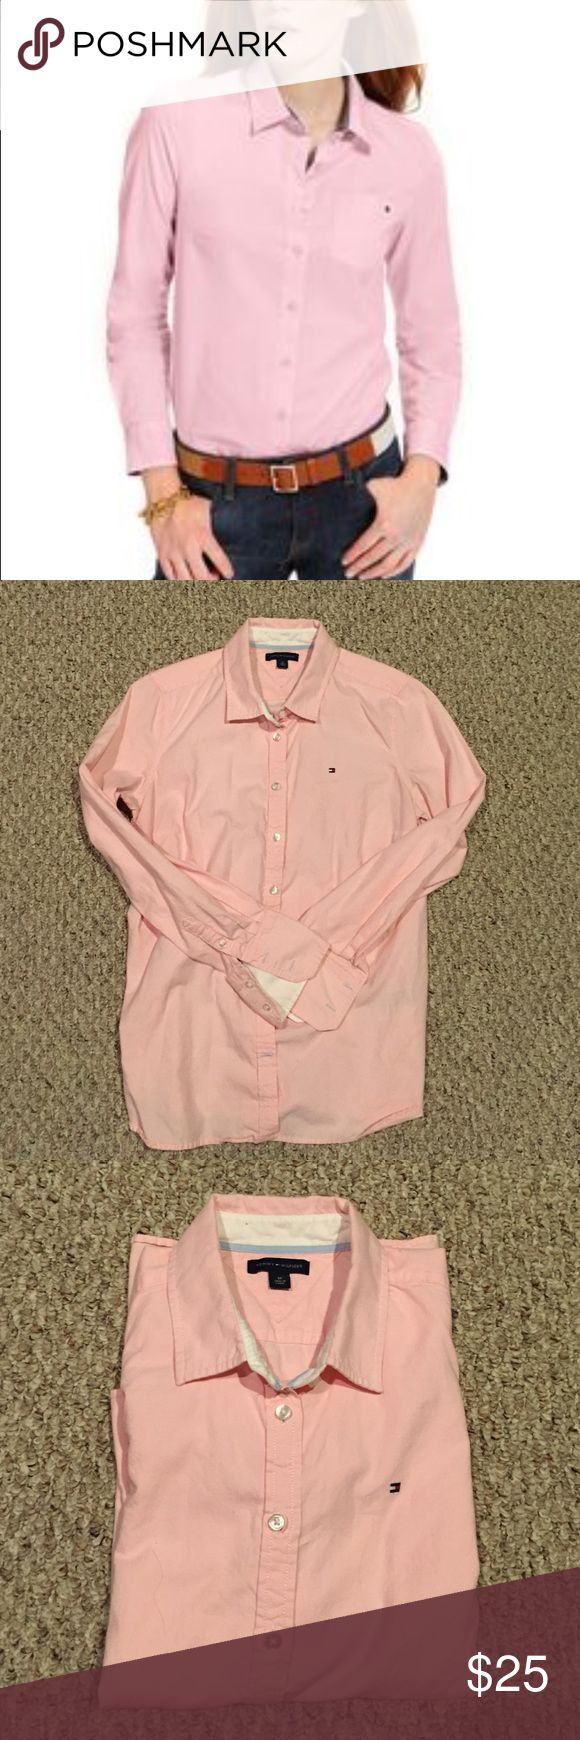 Classic Women's Oxford Shirt Classic oxford. Perfect for any occasion. This TH shirt is in excellent condition.  Details: cotton, machine washable, button front closures. A must have :) Tommy Hilfiger Tops Button Down Shirts